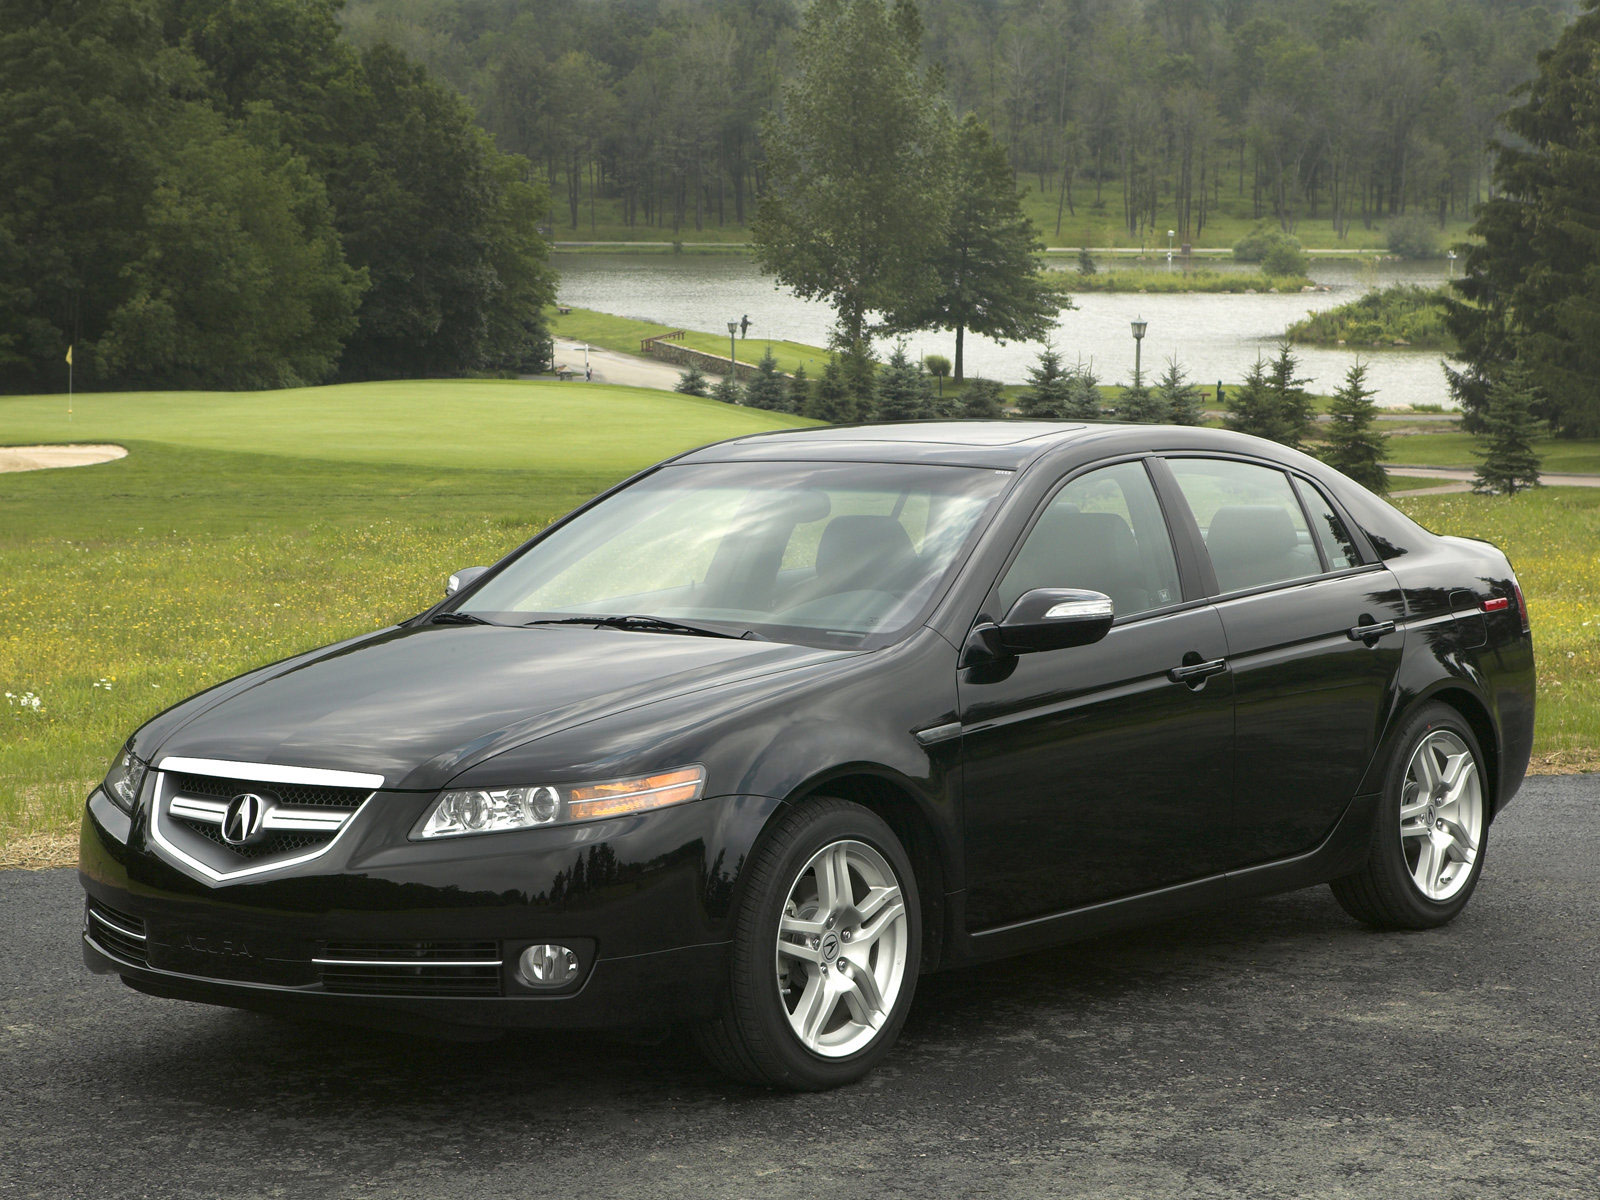 2007 acura tl car insurance information. Black Bedroom Furniture Sets. Home Design Ideas